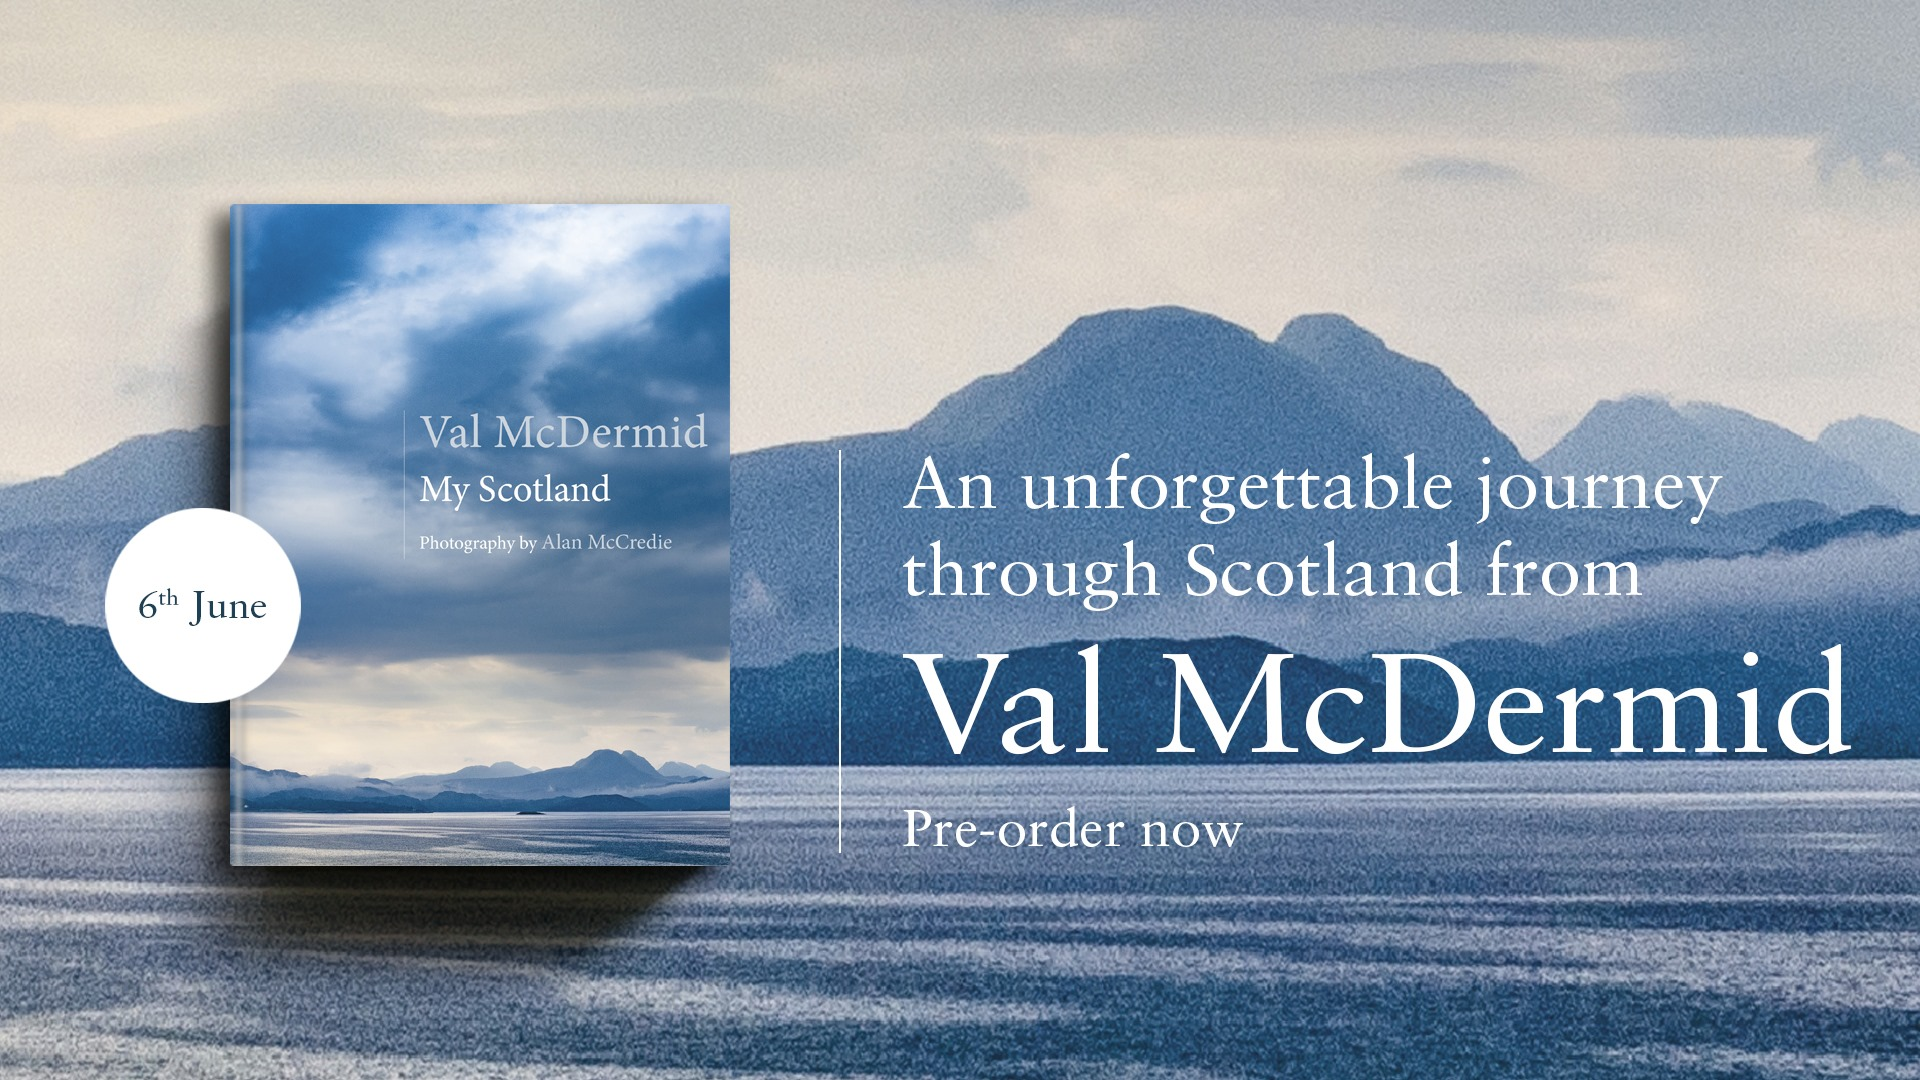 Val McDermid - My Scotland